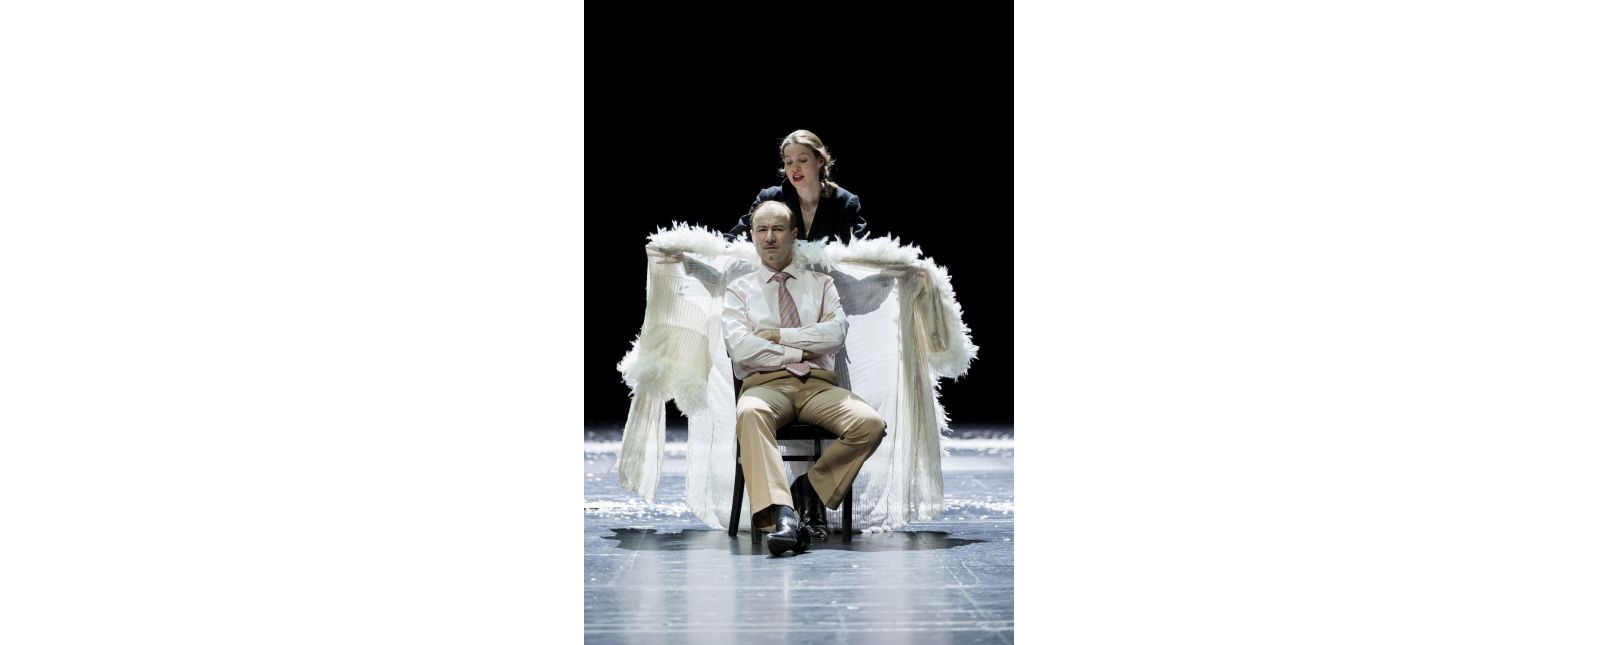 Angels in America // Andreas Jankowitsch, Inga Schäfer // Rainer Muranyi // 2018